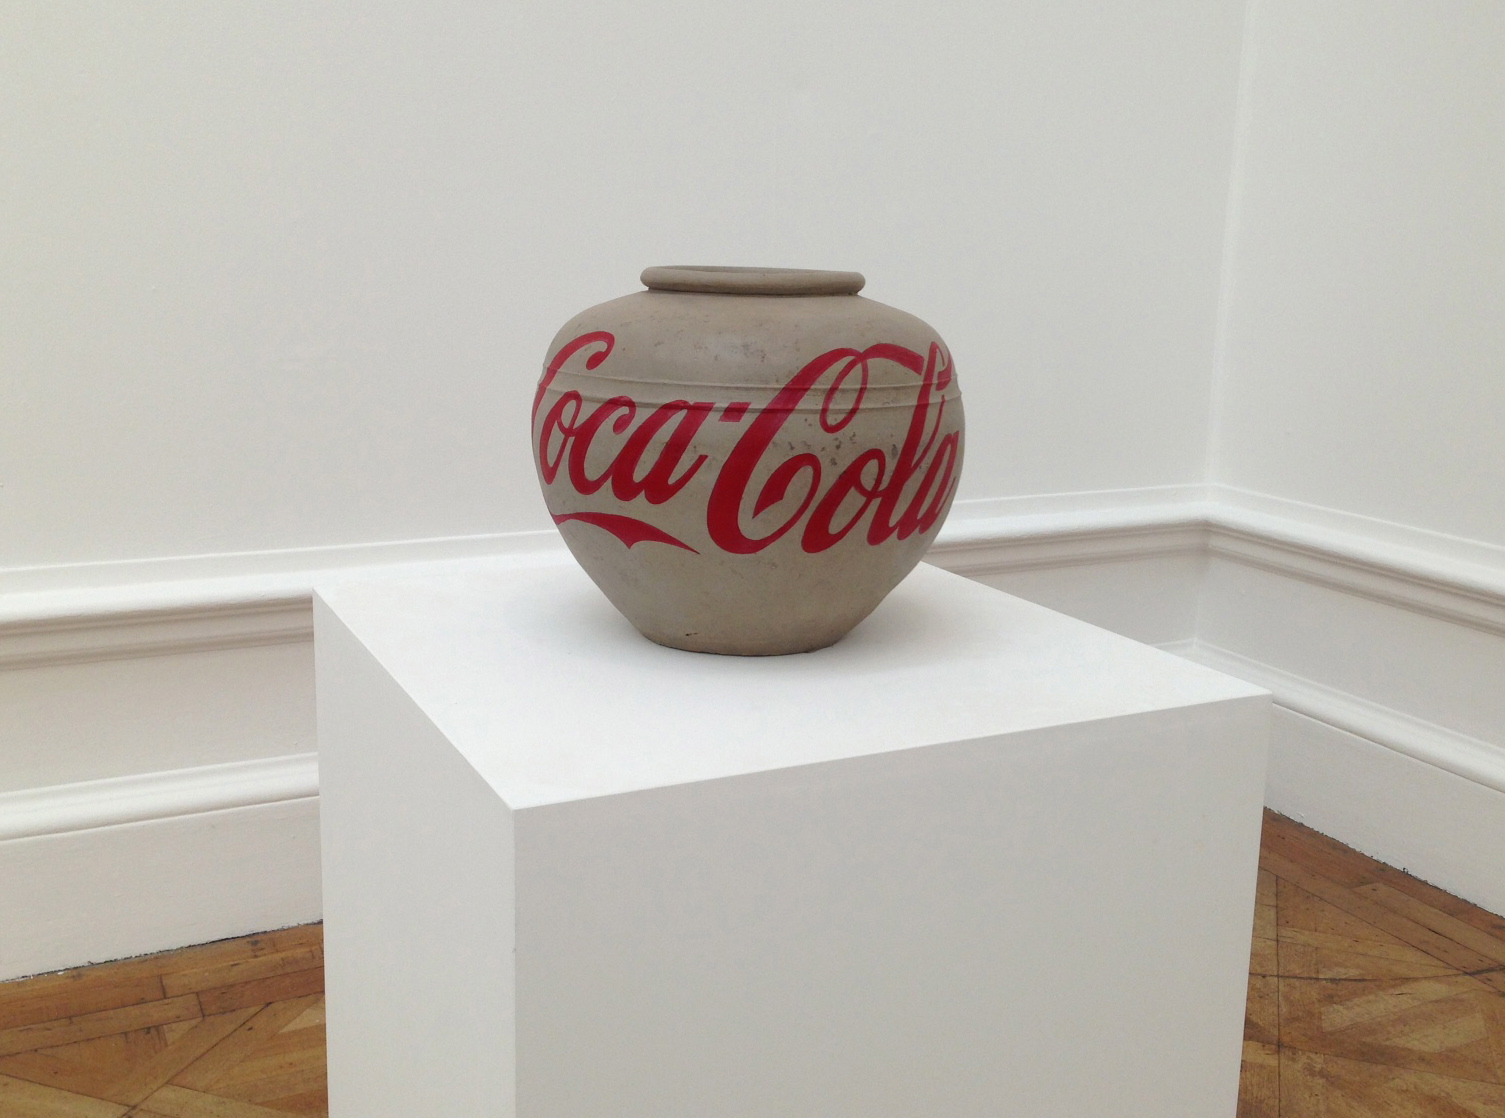 Coca-Cola Vase, 2014. Han Dynasty (206 BC-220 AD), vase with paint